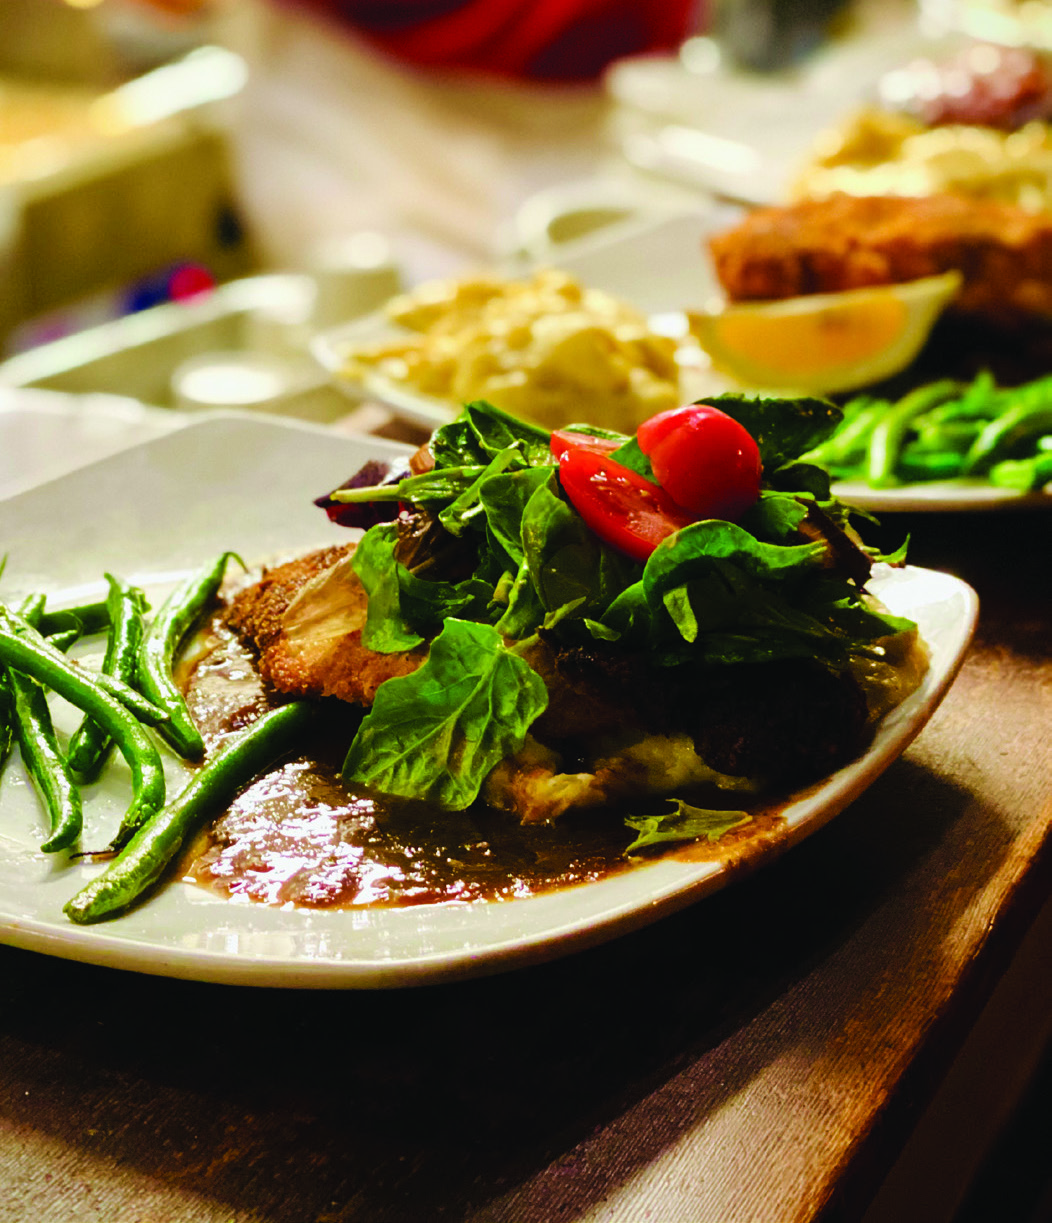 vegetables shine in the Farm to Table meals